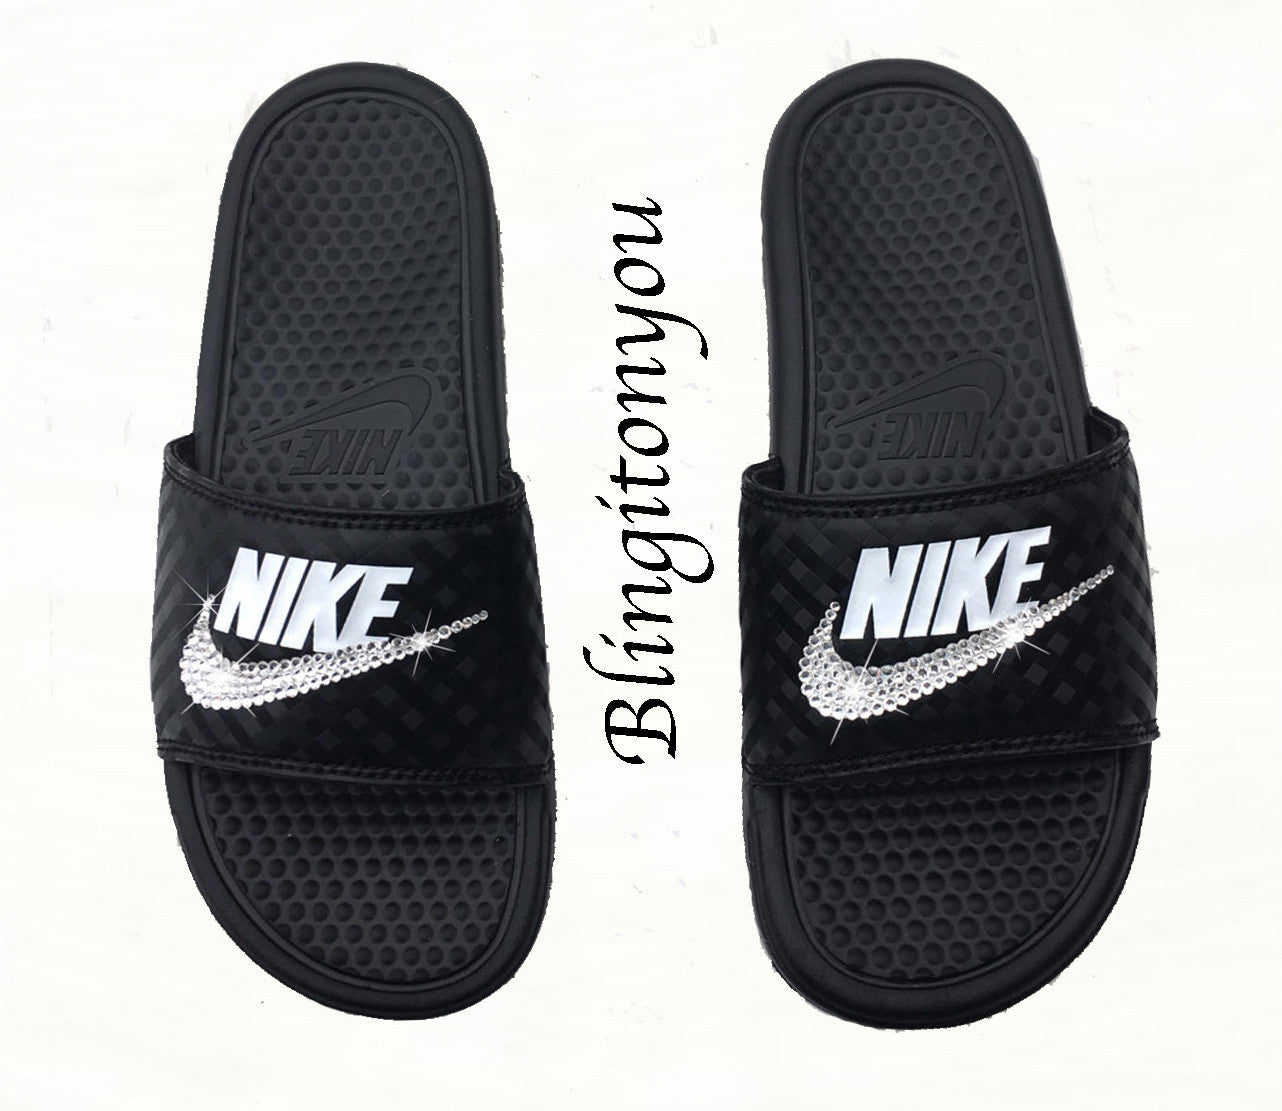 7a685d912e70 New Women s Swarovski Nike Benassi Black   White Slide Sandals Customized  with Clear Swarovski Crystal Rhinestones